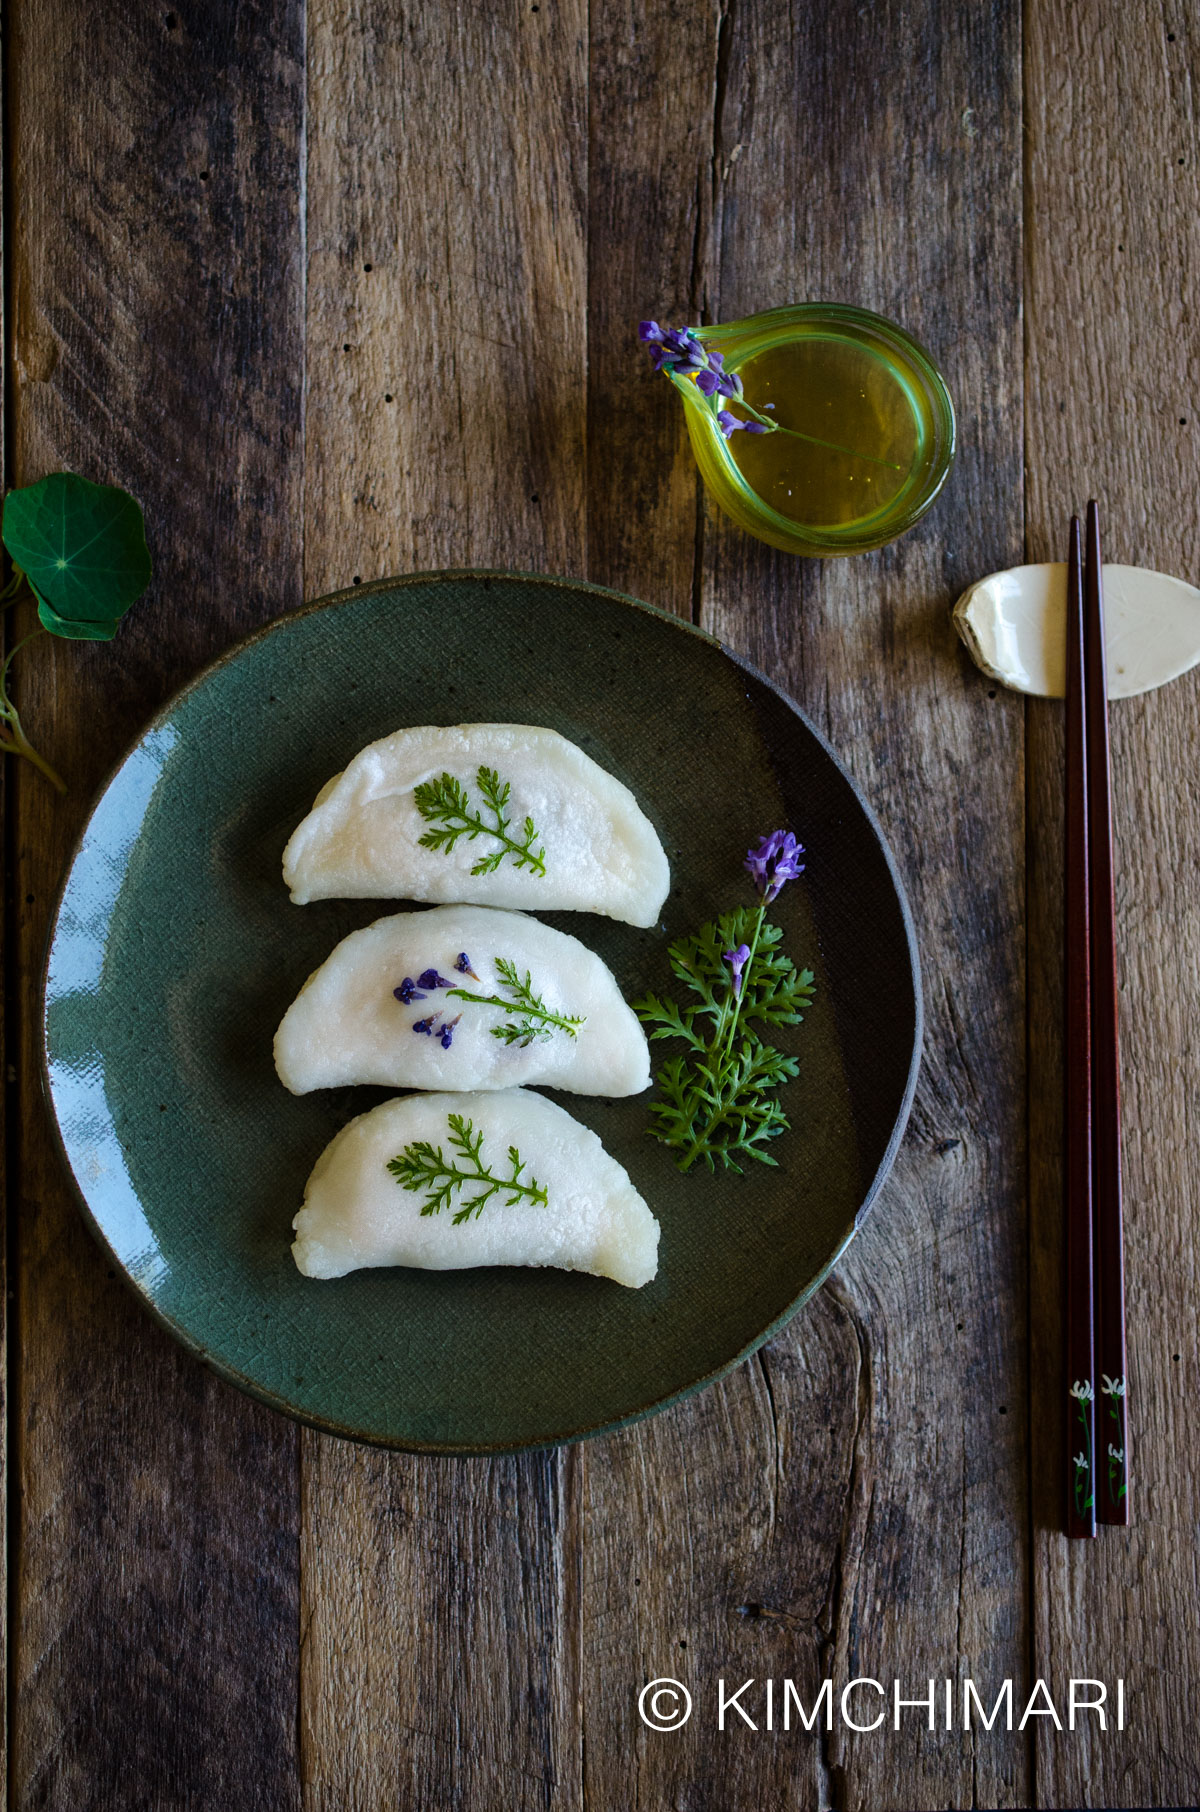 Pan-fried Rice Cake Dumplings (Bukkumi) filled with Sweet Red Beans with Fresh Ssukat and Lavender